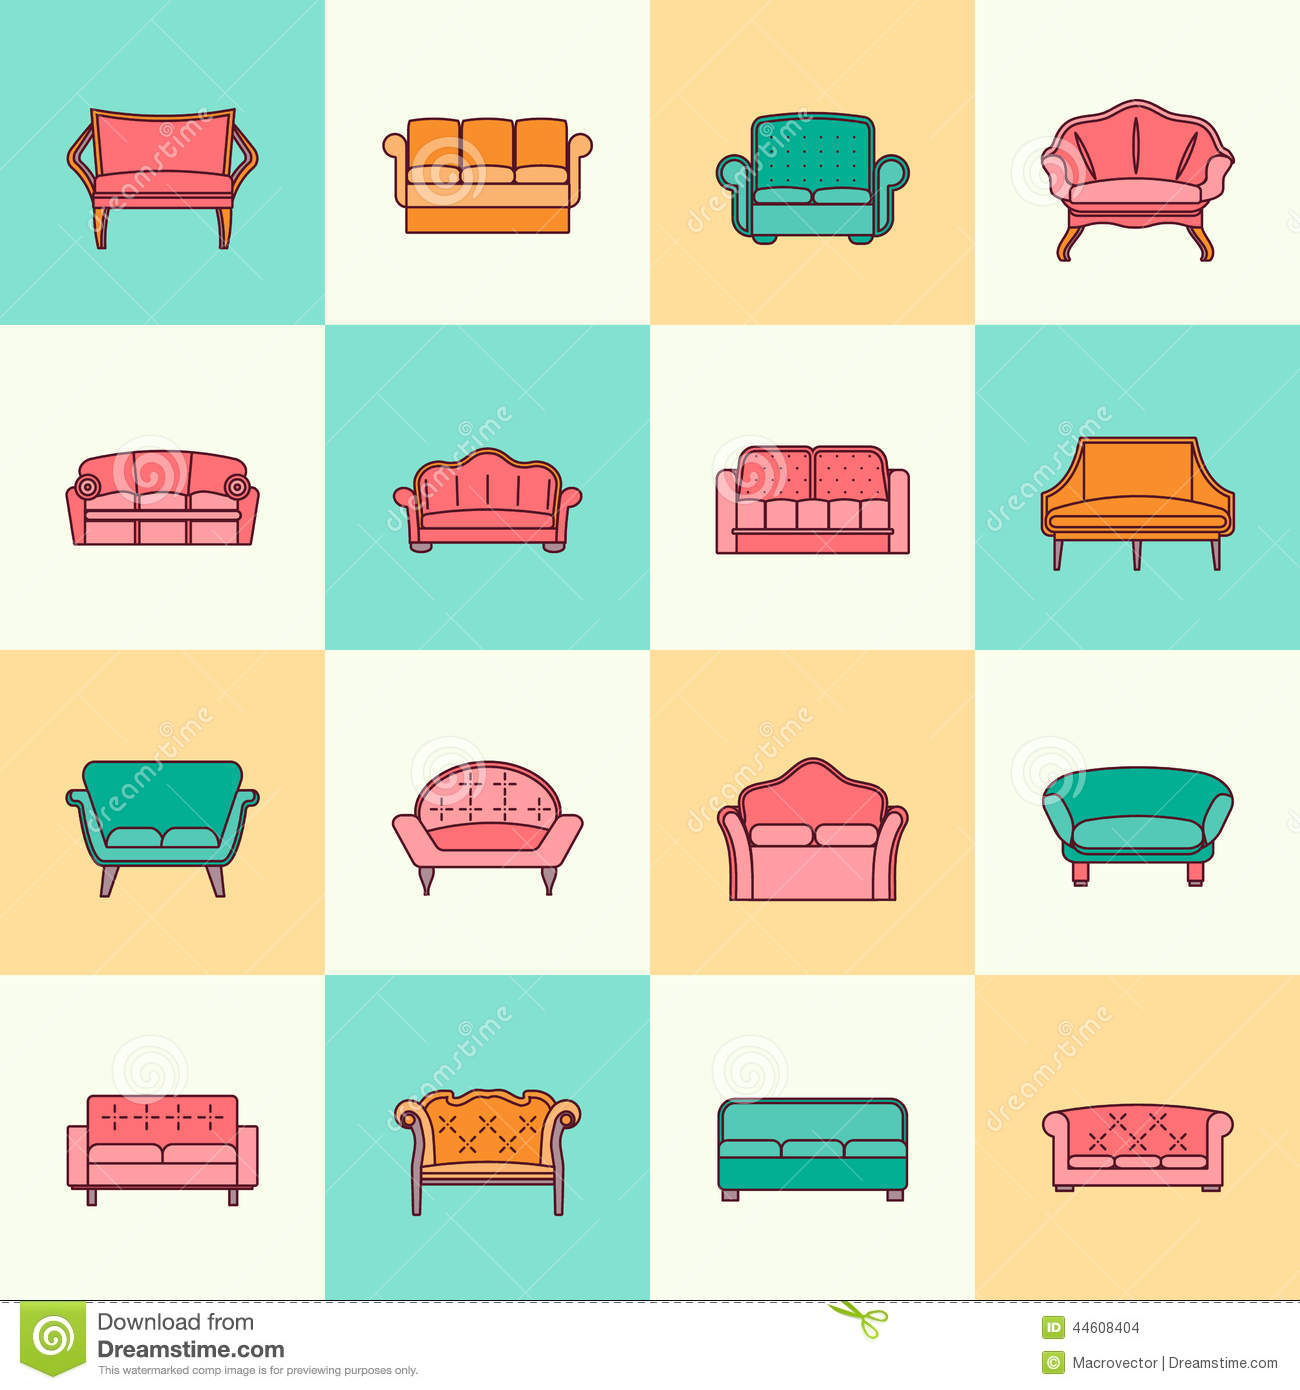 Modern Furniture Icon sofa icon flat line stock vector - image: 44608404